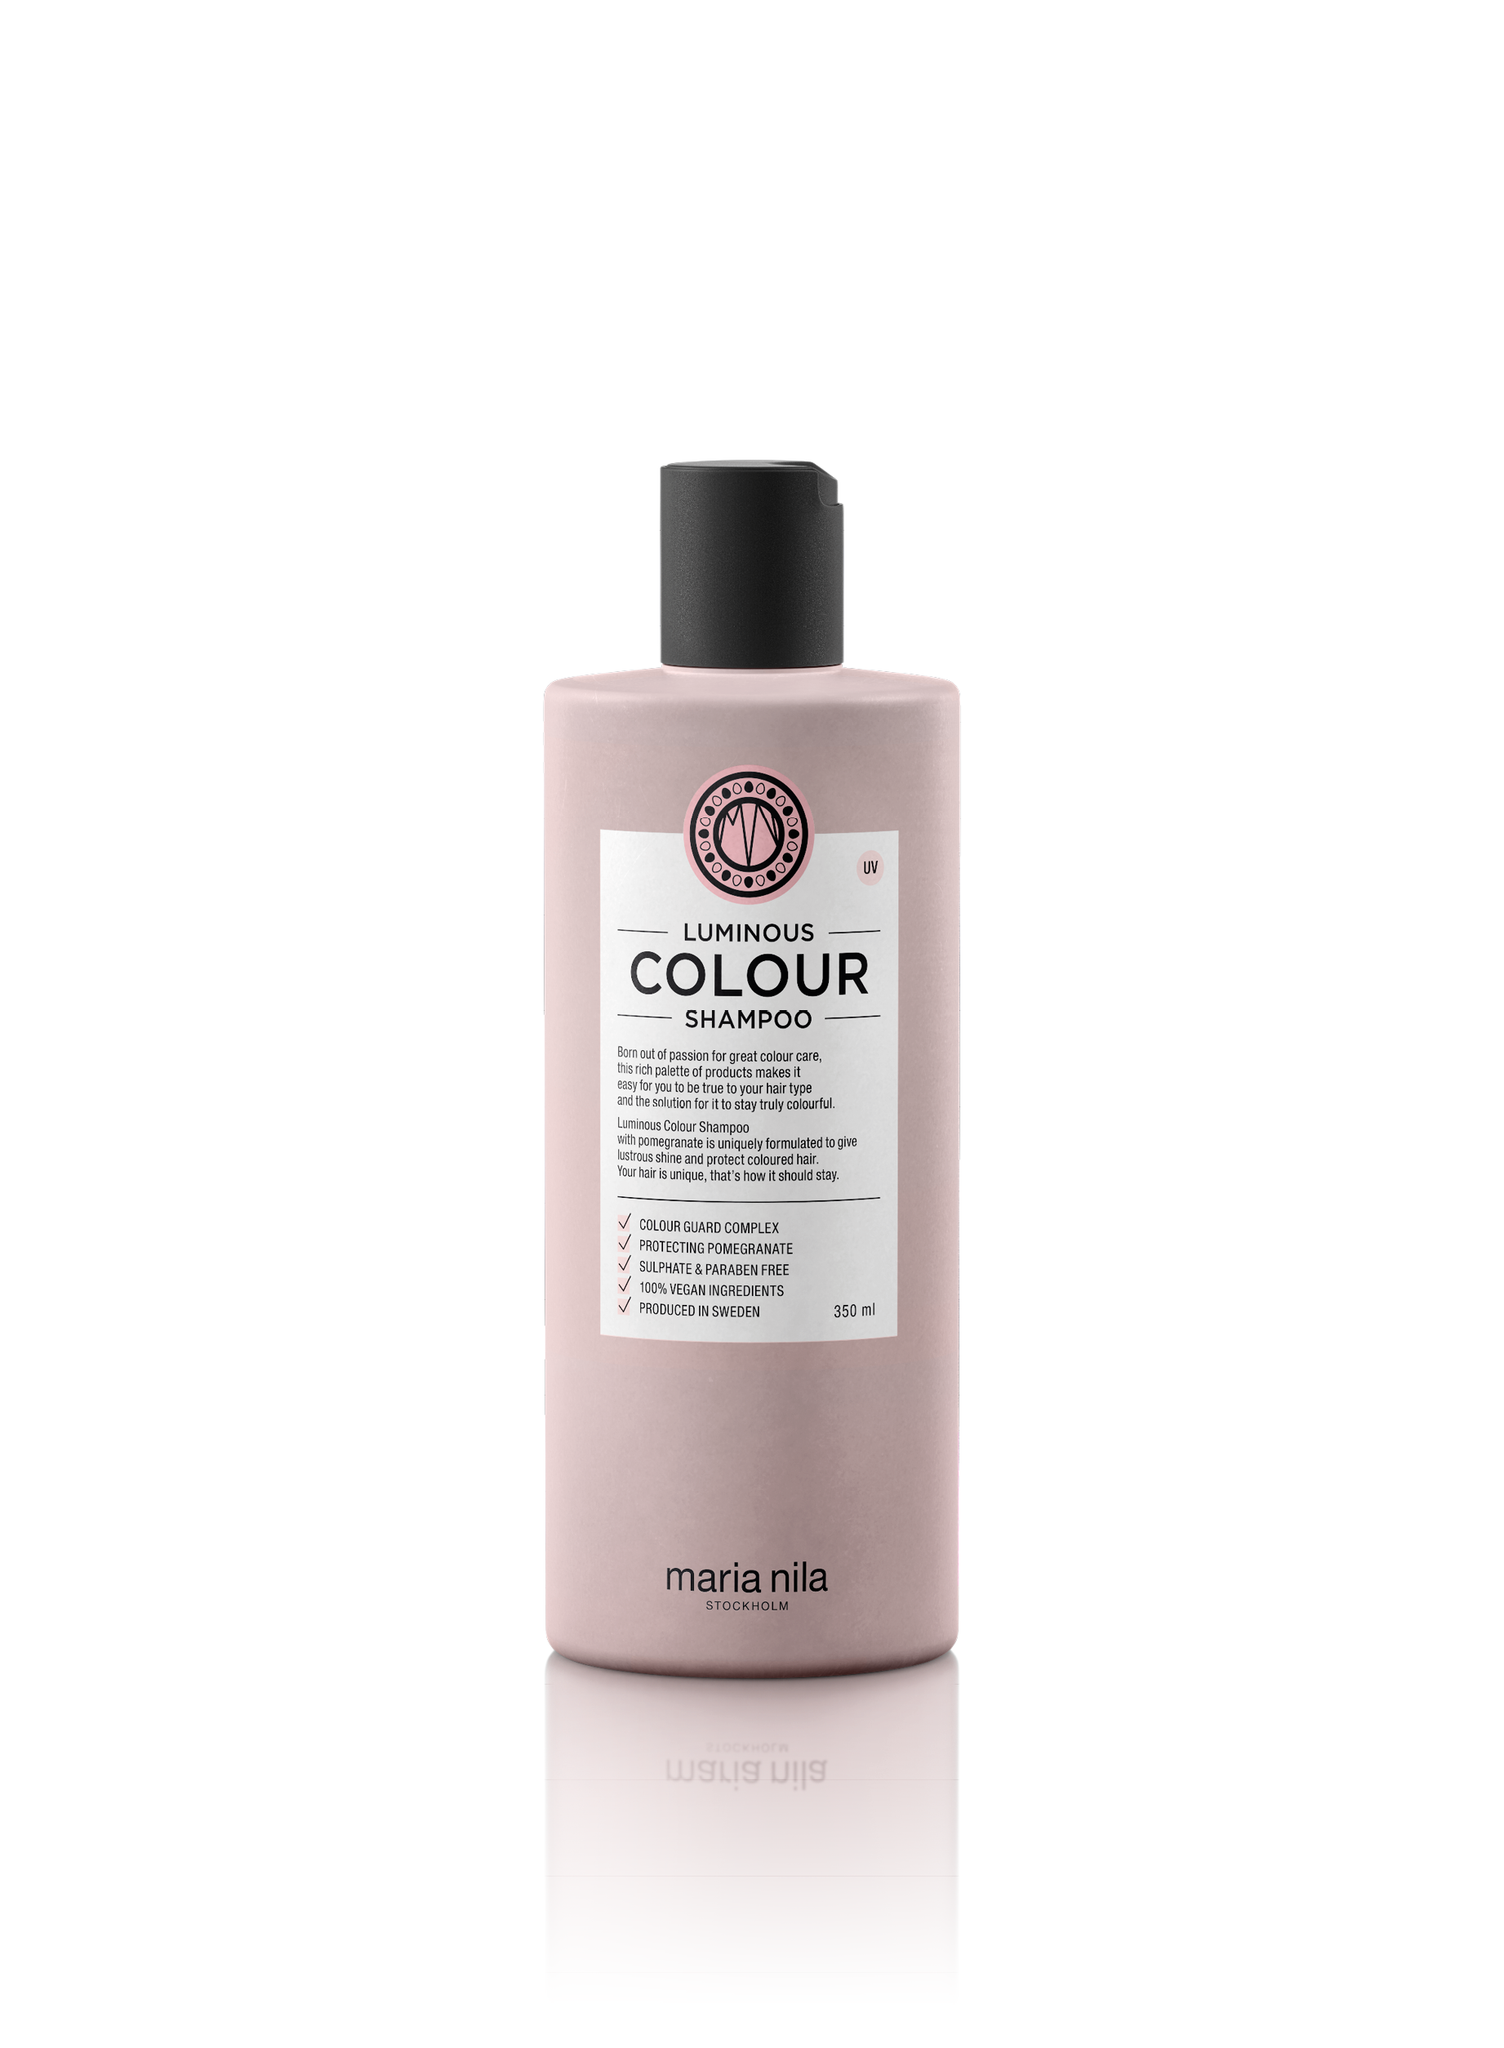 Luminous Colour Shampoo